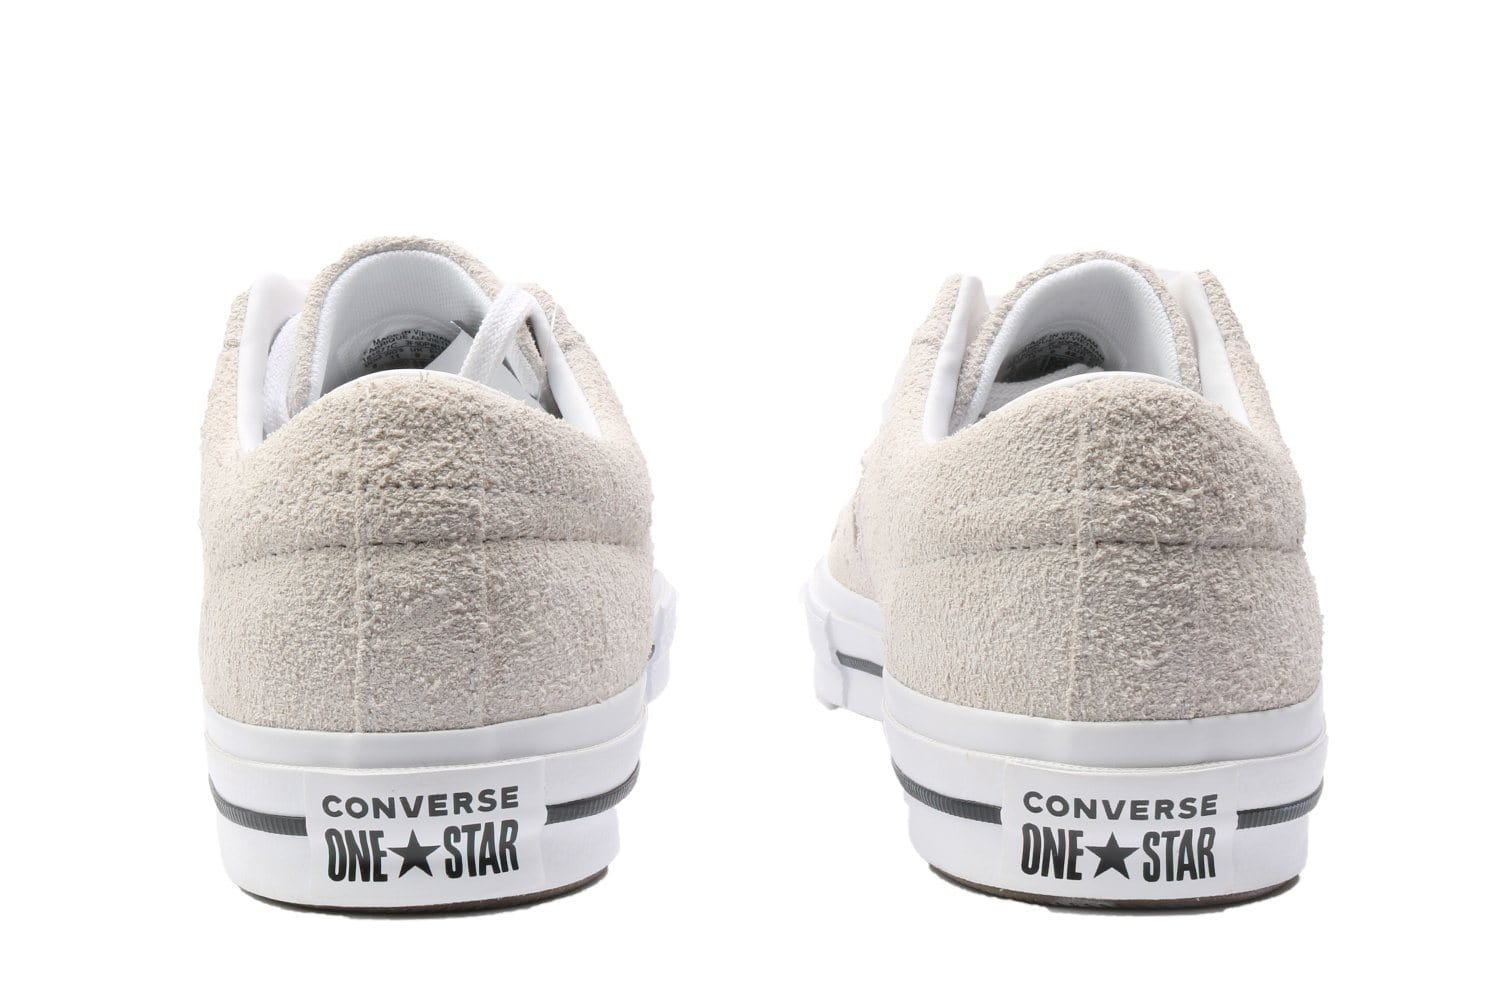 ONE STAR OX - 161577C MENS FOOTWEAR CONVERSE